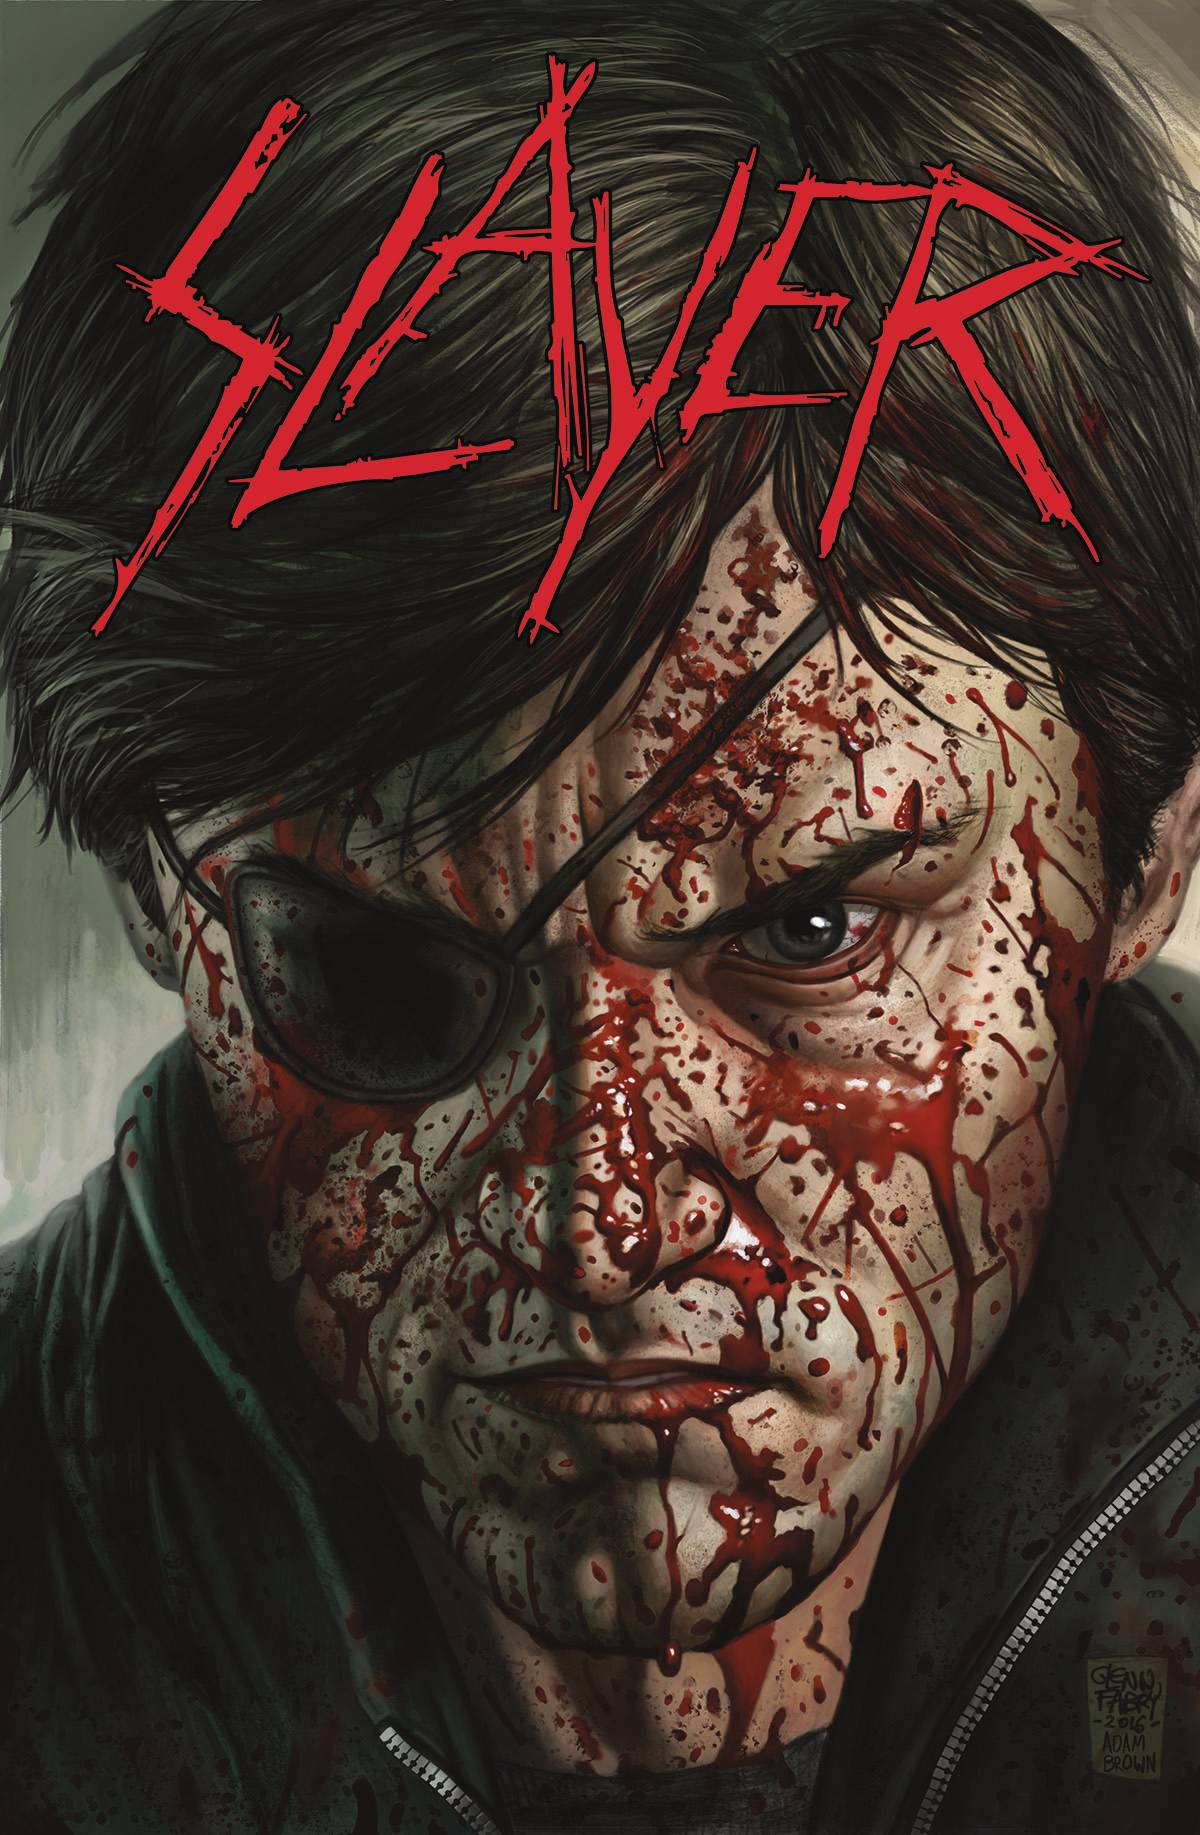 SLAYER REPENTLESS #1 (OF 3) MAIN FABRY CVR